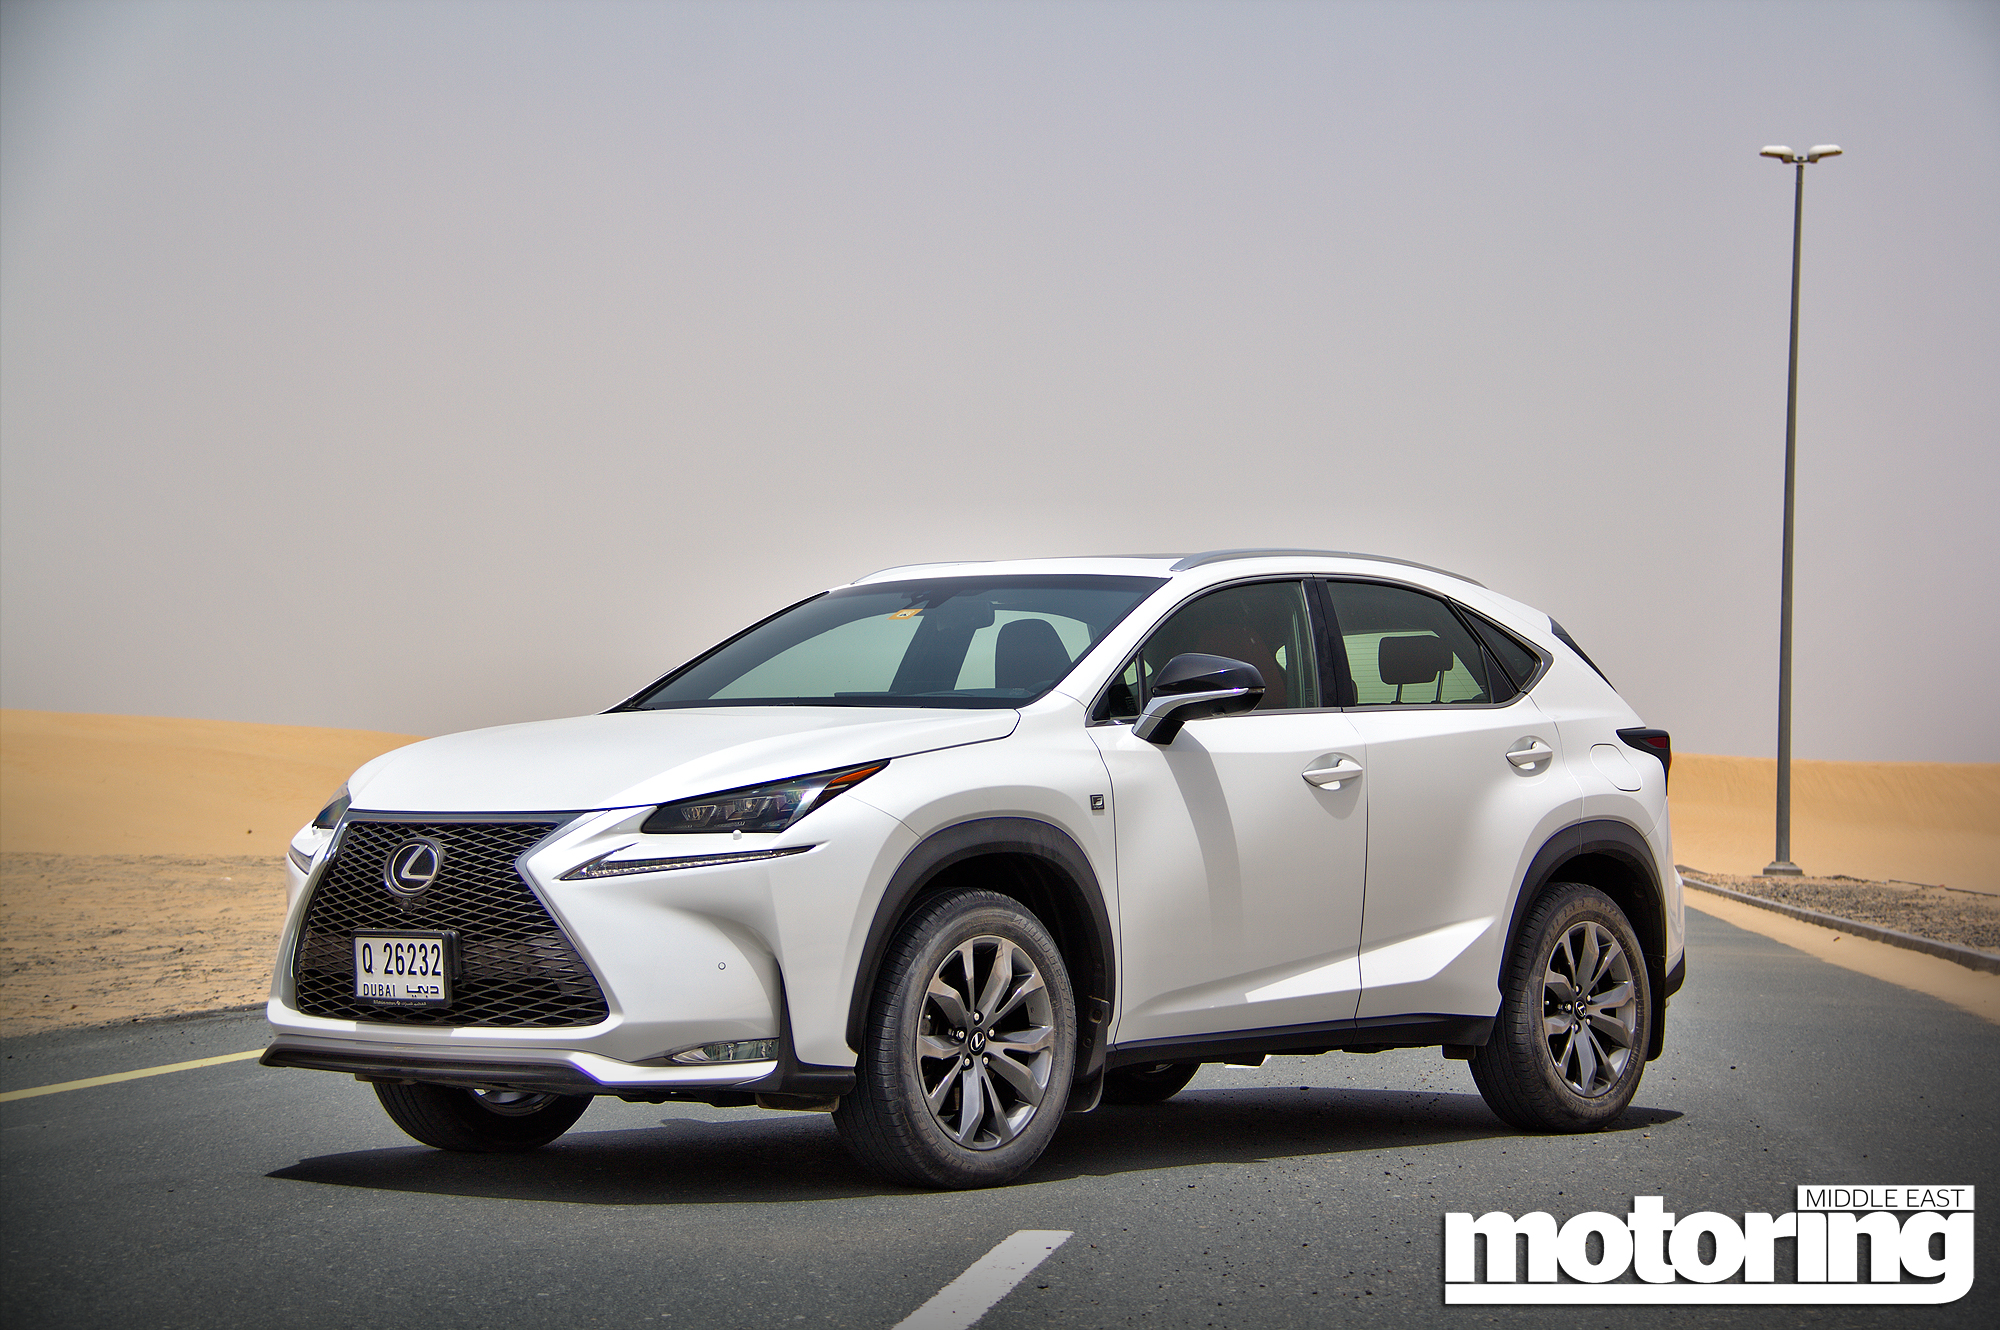 Amazing 2015 Lexus NX 200t Video ReviewMotoring Middle East Car News Reviews And Bu